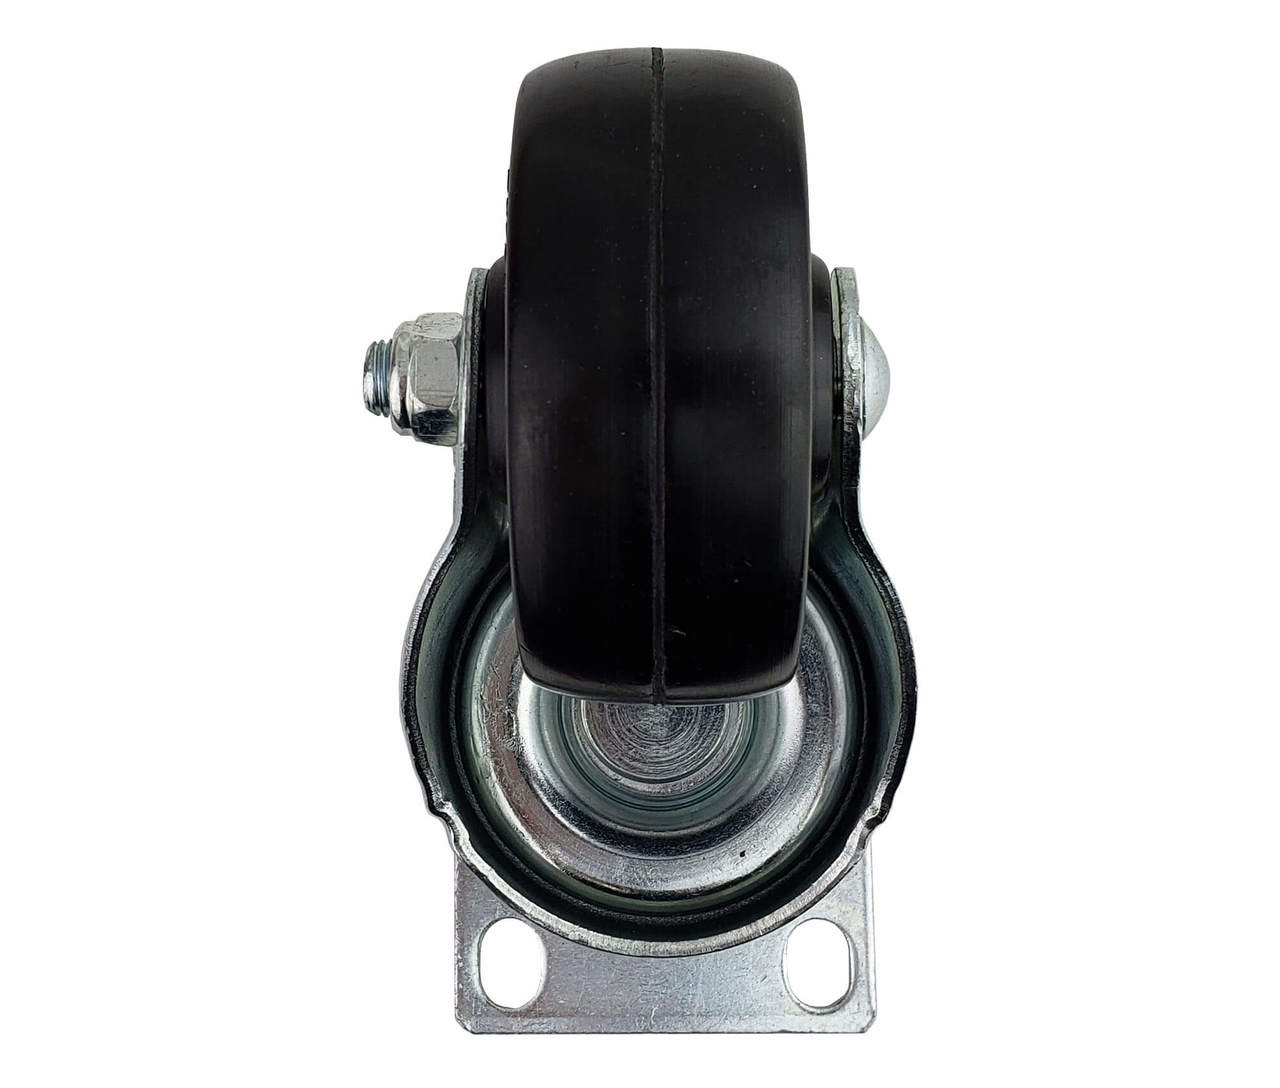 Caster, swivel without brake, Bottom View